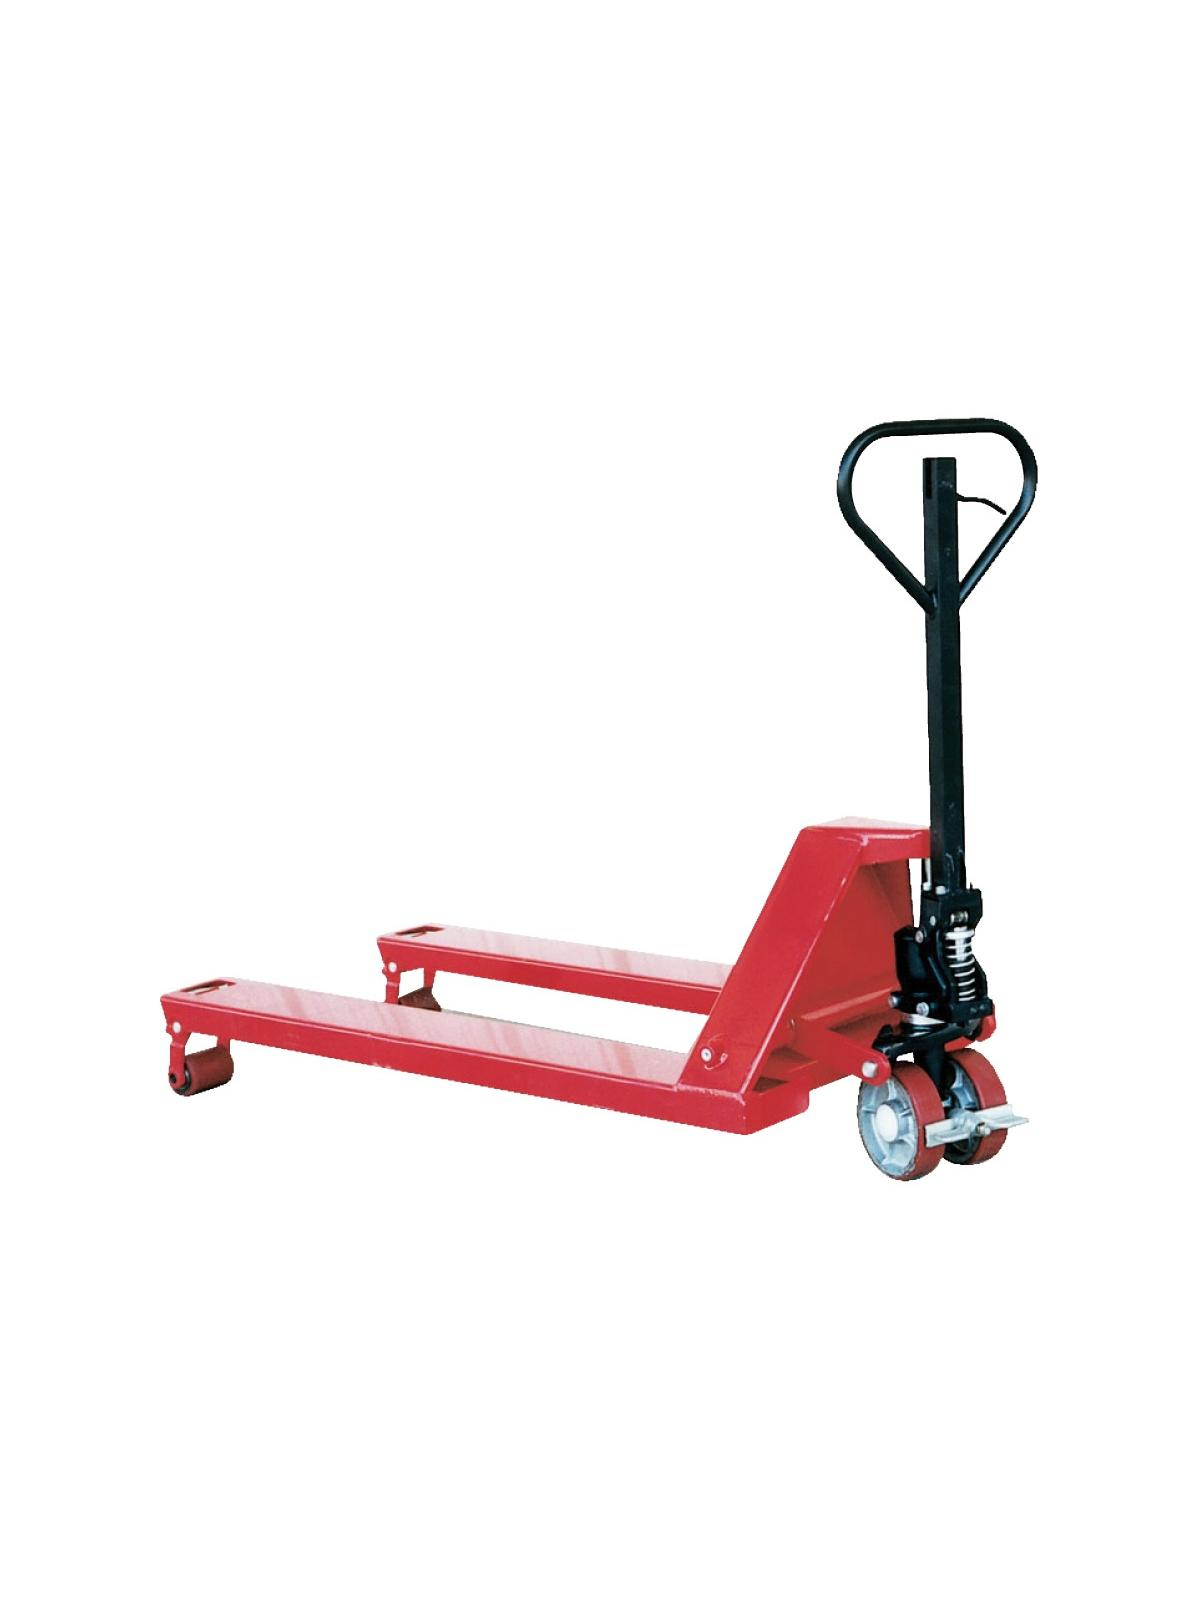 Wheel Nose Pallet Truck At Nationwide Industrial Supply Llc